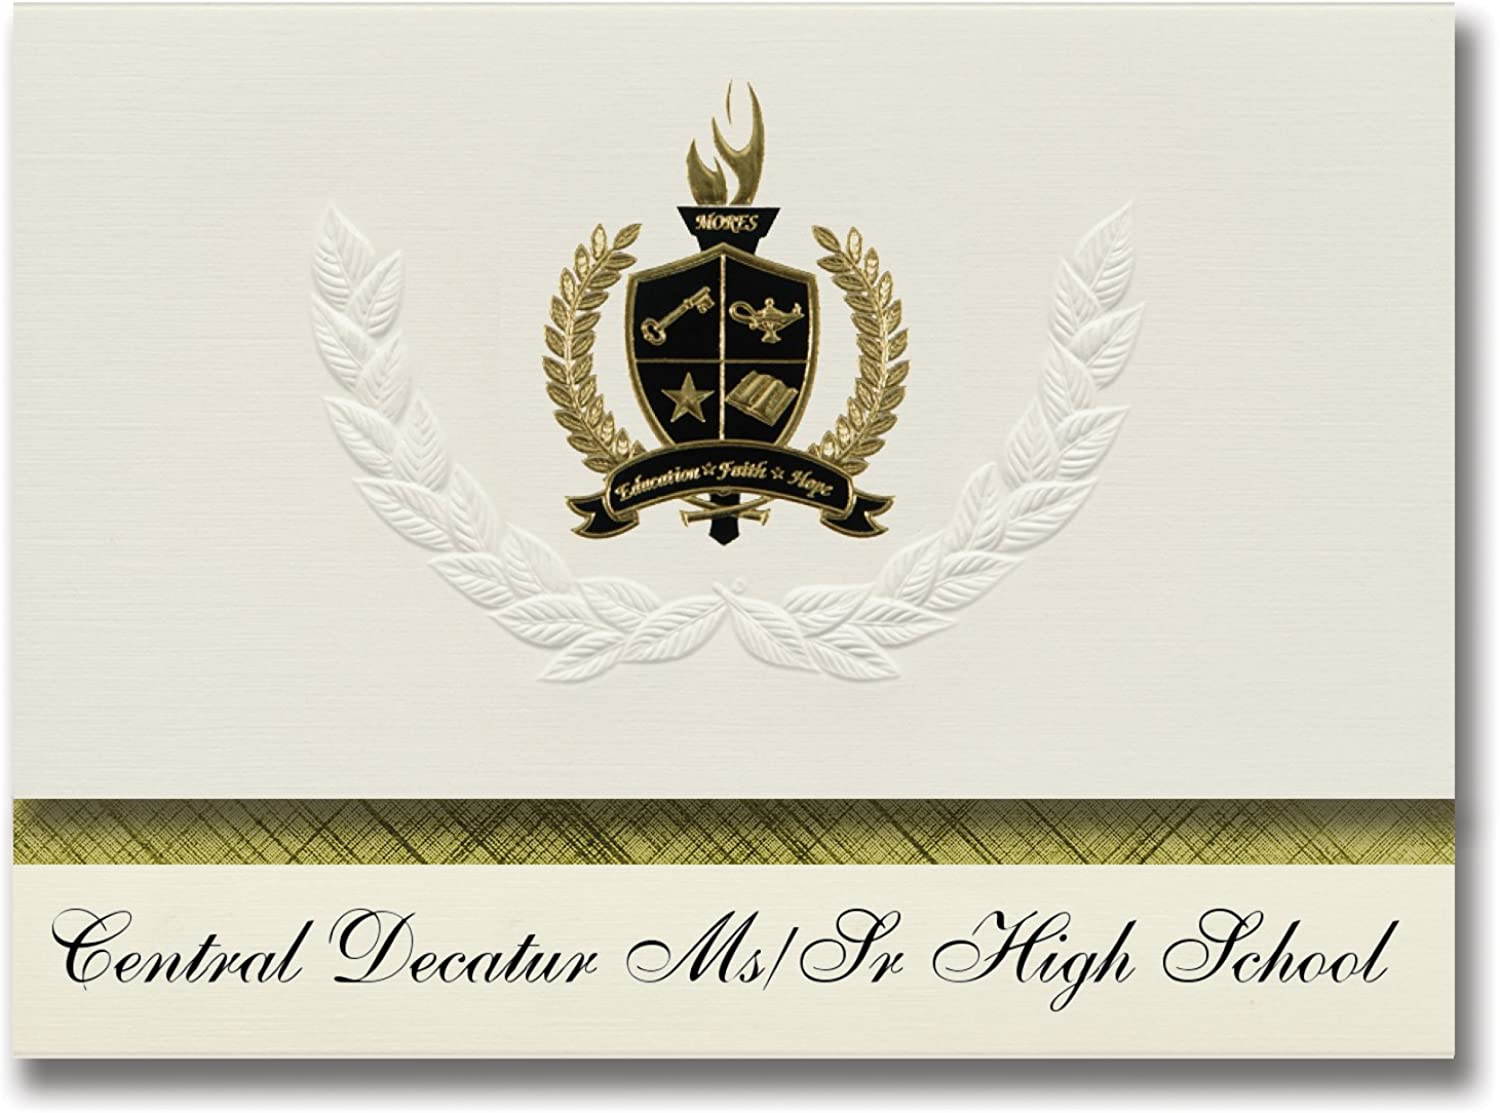 Signature Ankündigungen Central Decatur MS SR High School (Leon, IA) Graduation Ankündigungen, Presidential Stil, Elite Paket 25 Stück mit Gold & Schwarz Metallic Folie Dichtung B078WFWXHT    | Maßstab ist der Grundstein, Qualität ist Säule